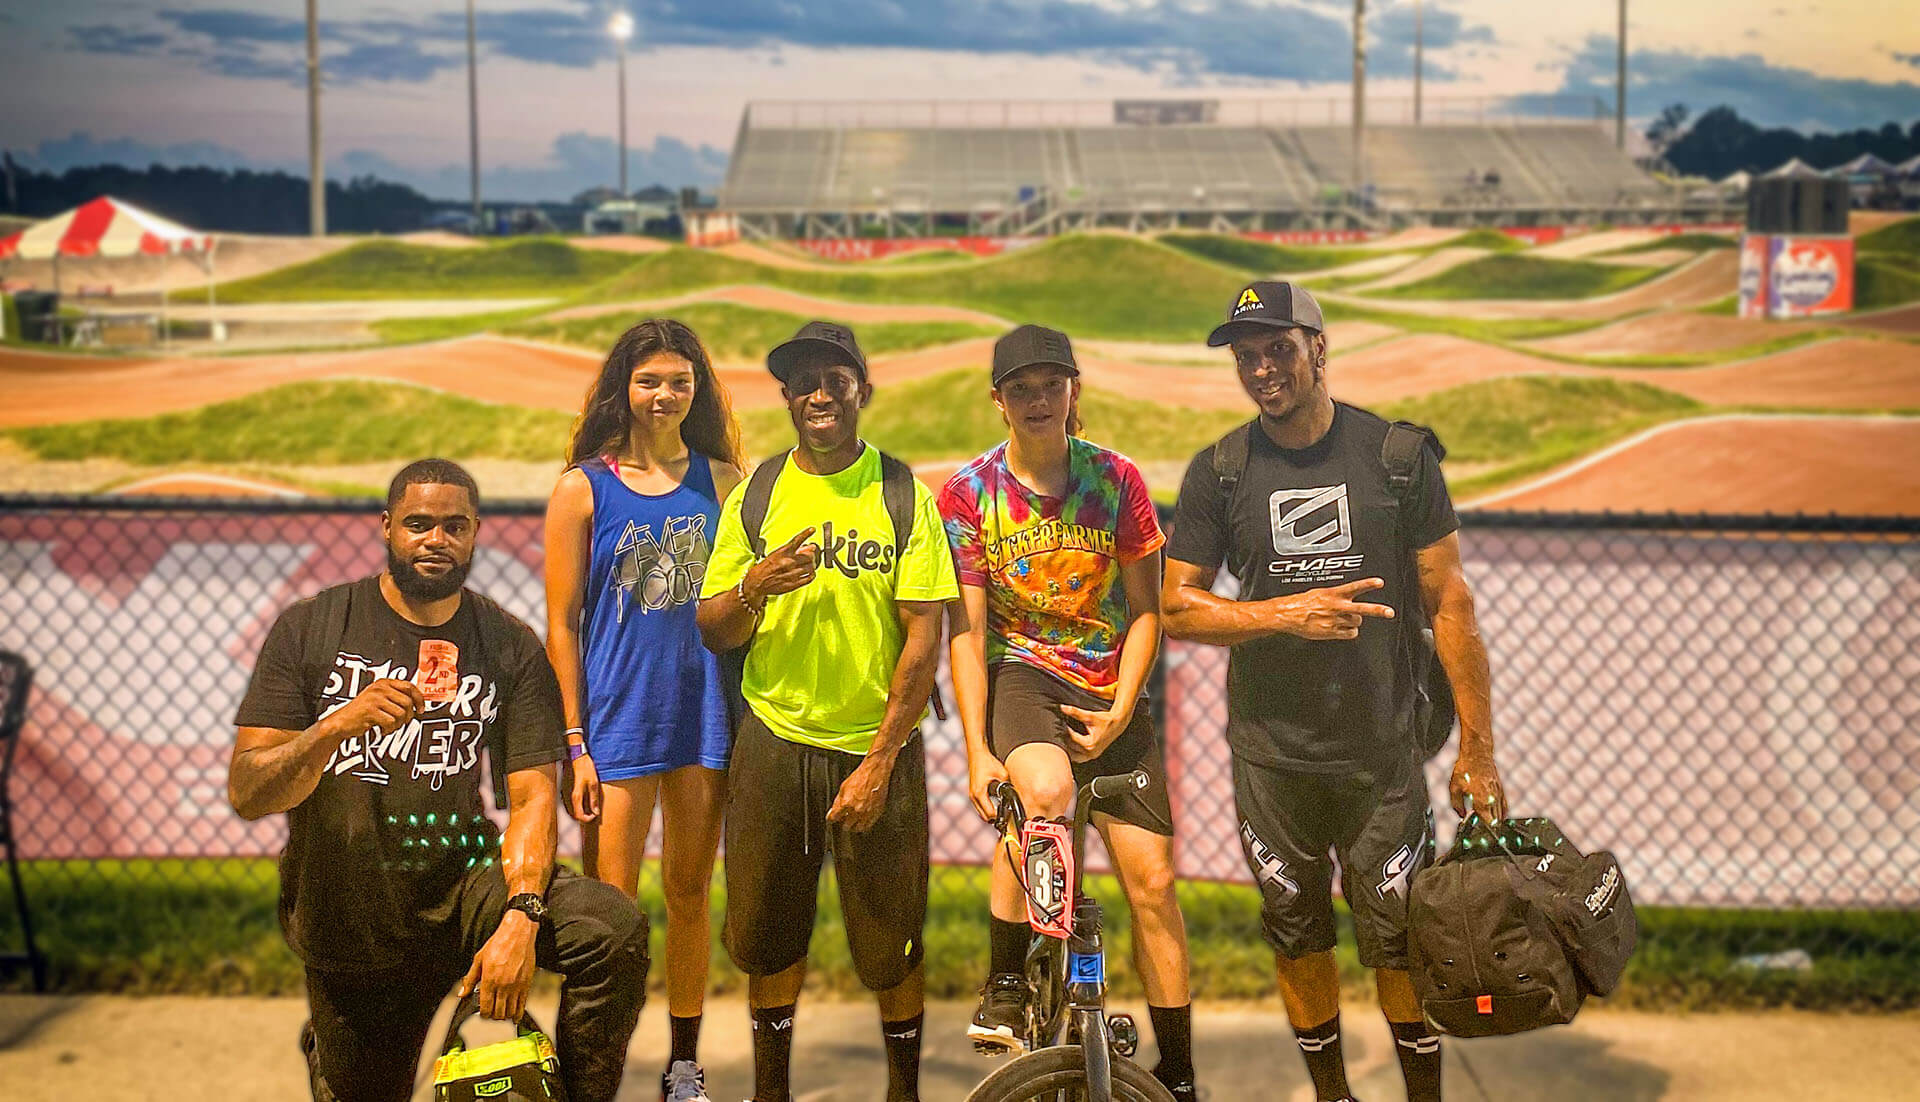 bay area bmxers labor day classic nationals 2020